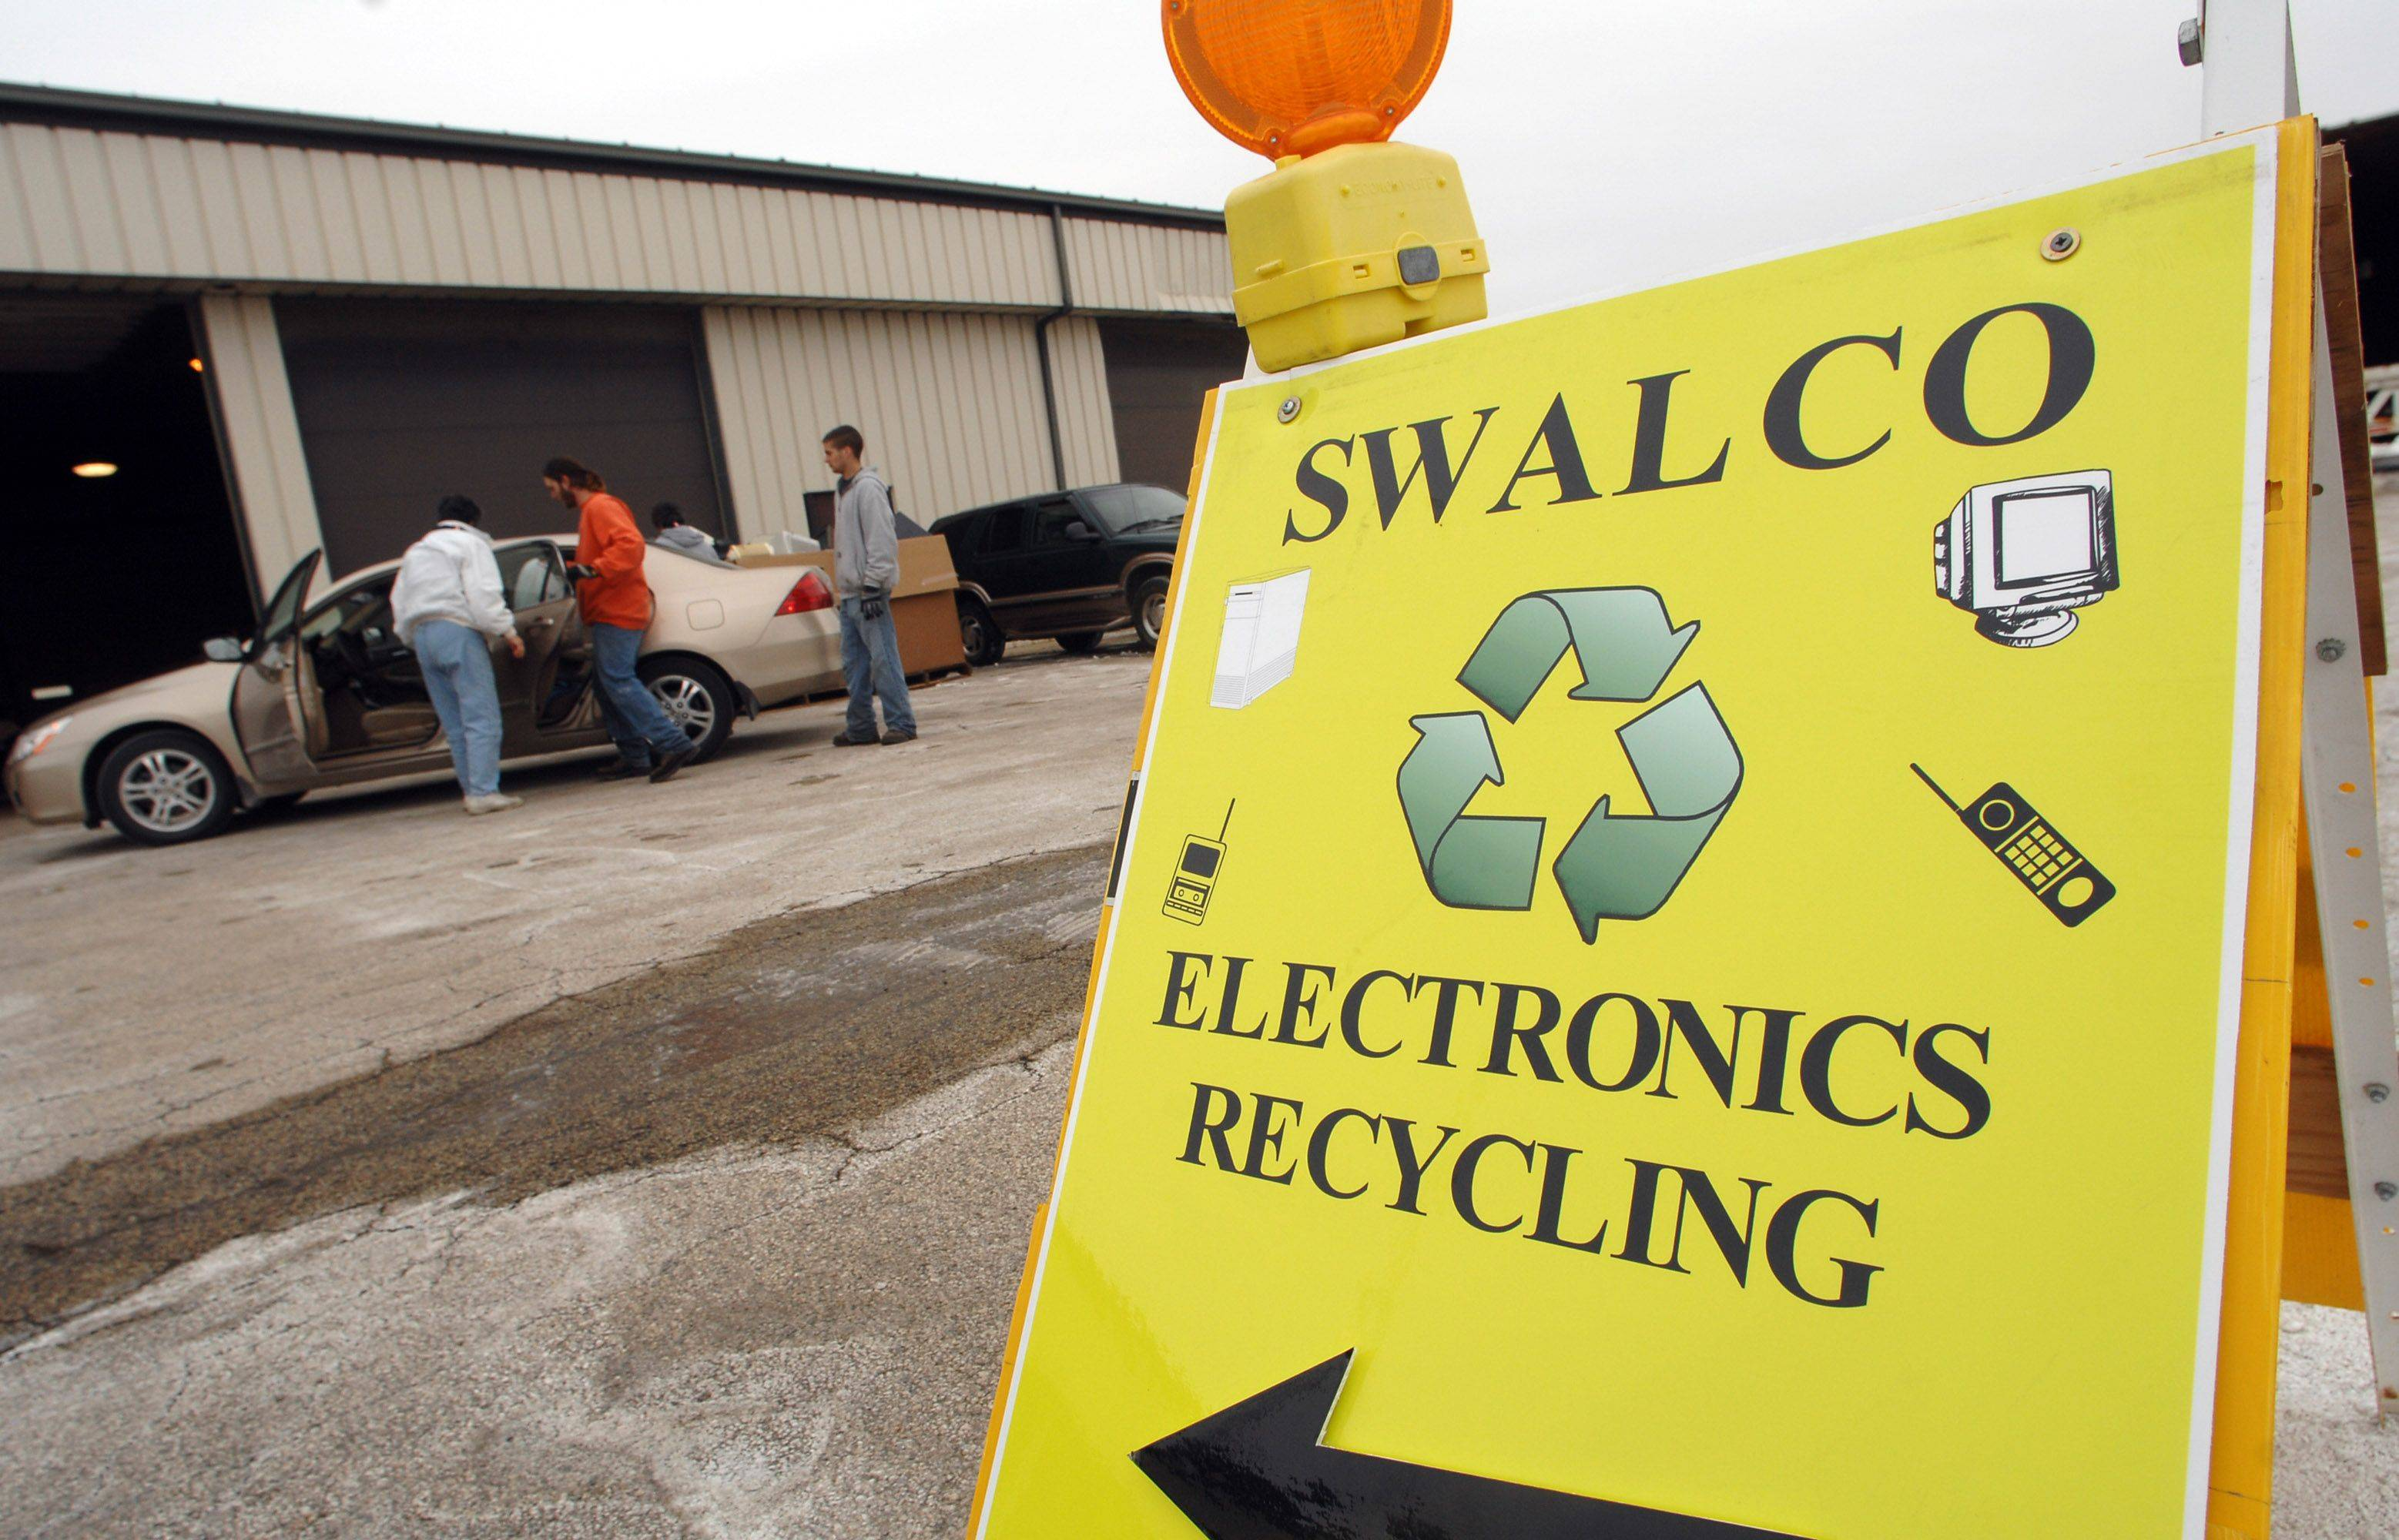 The Round Lake Beach public works garage once every two months is a drop off site for electronic waste.